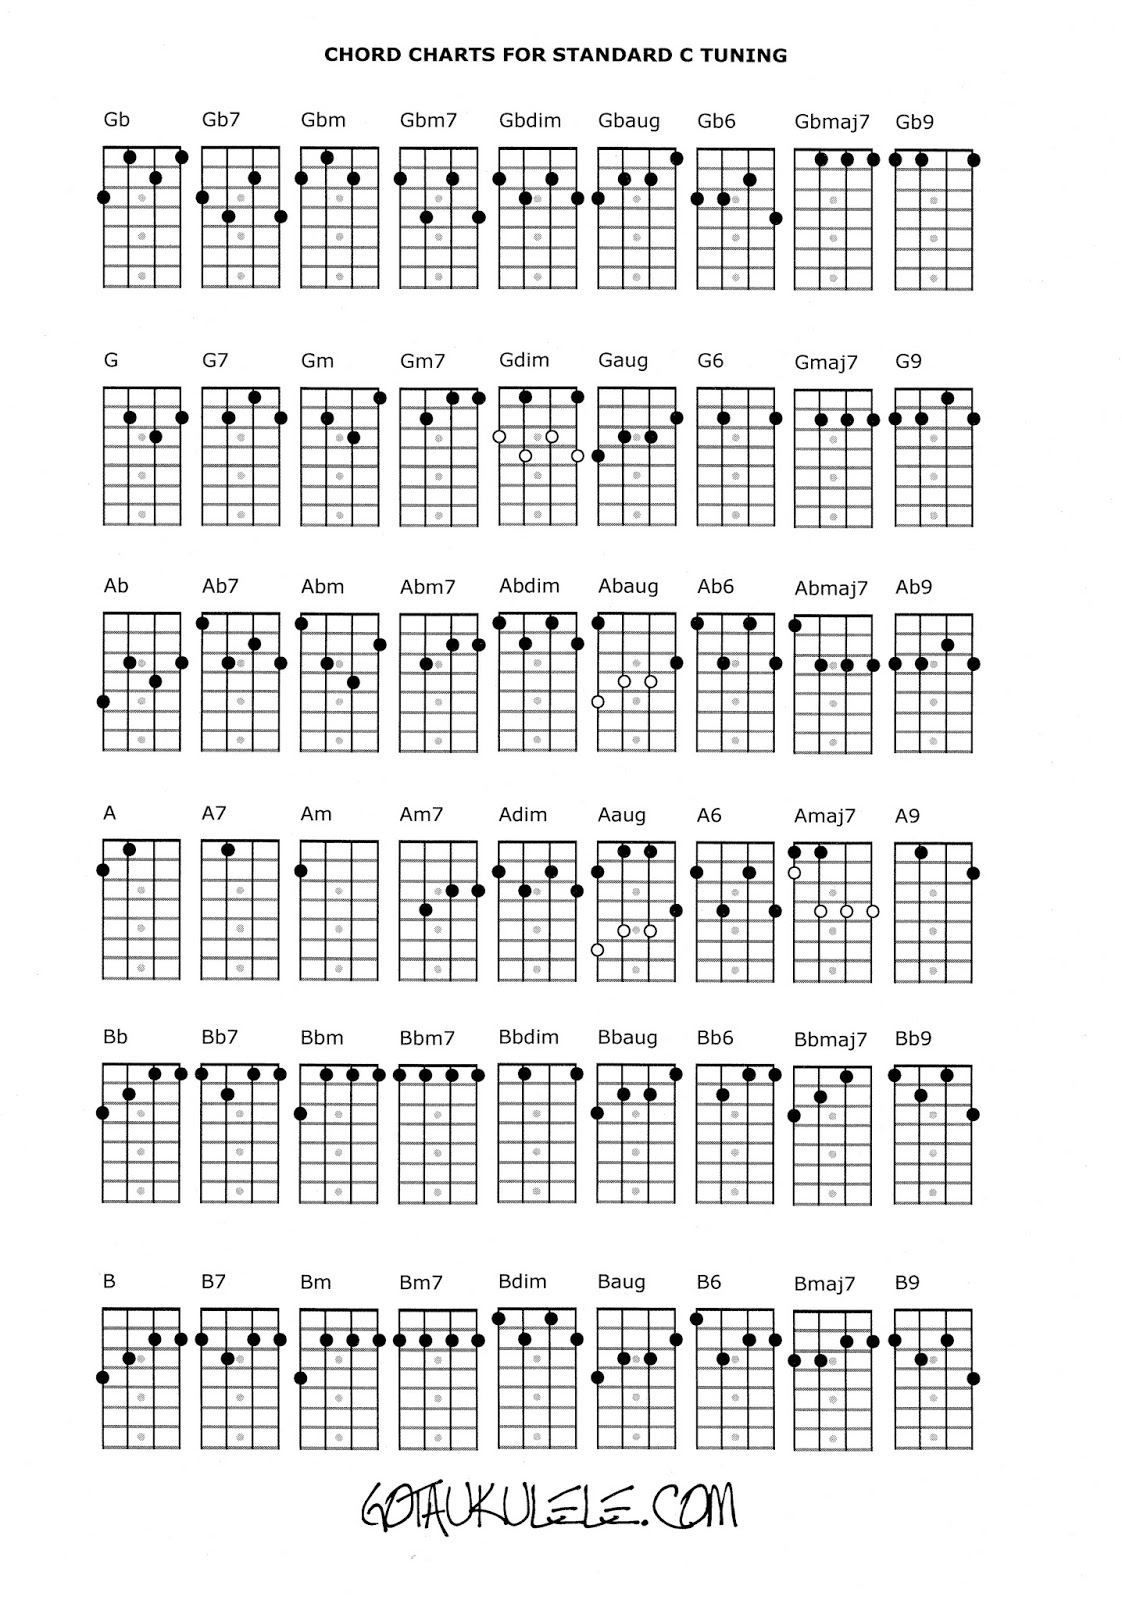 ukulele chords - More Photos